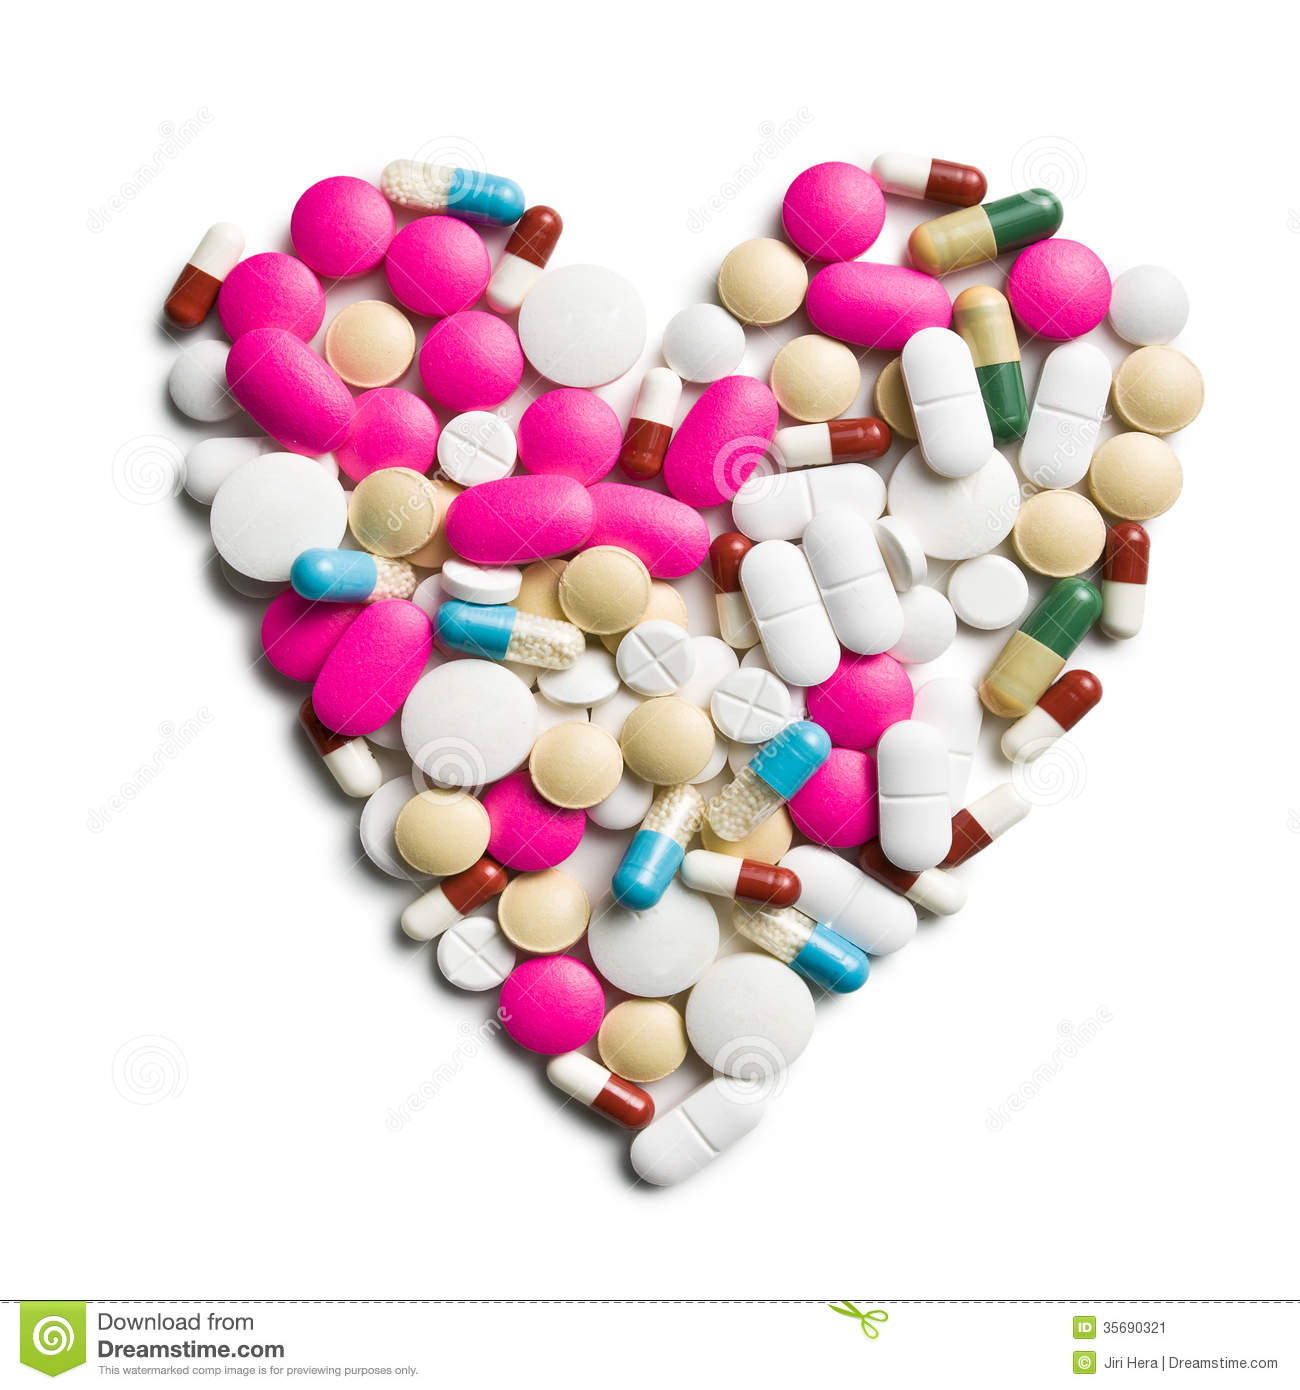 The Pill and Your Heart